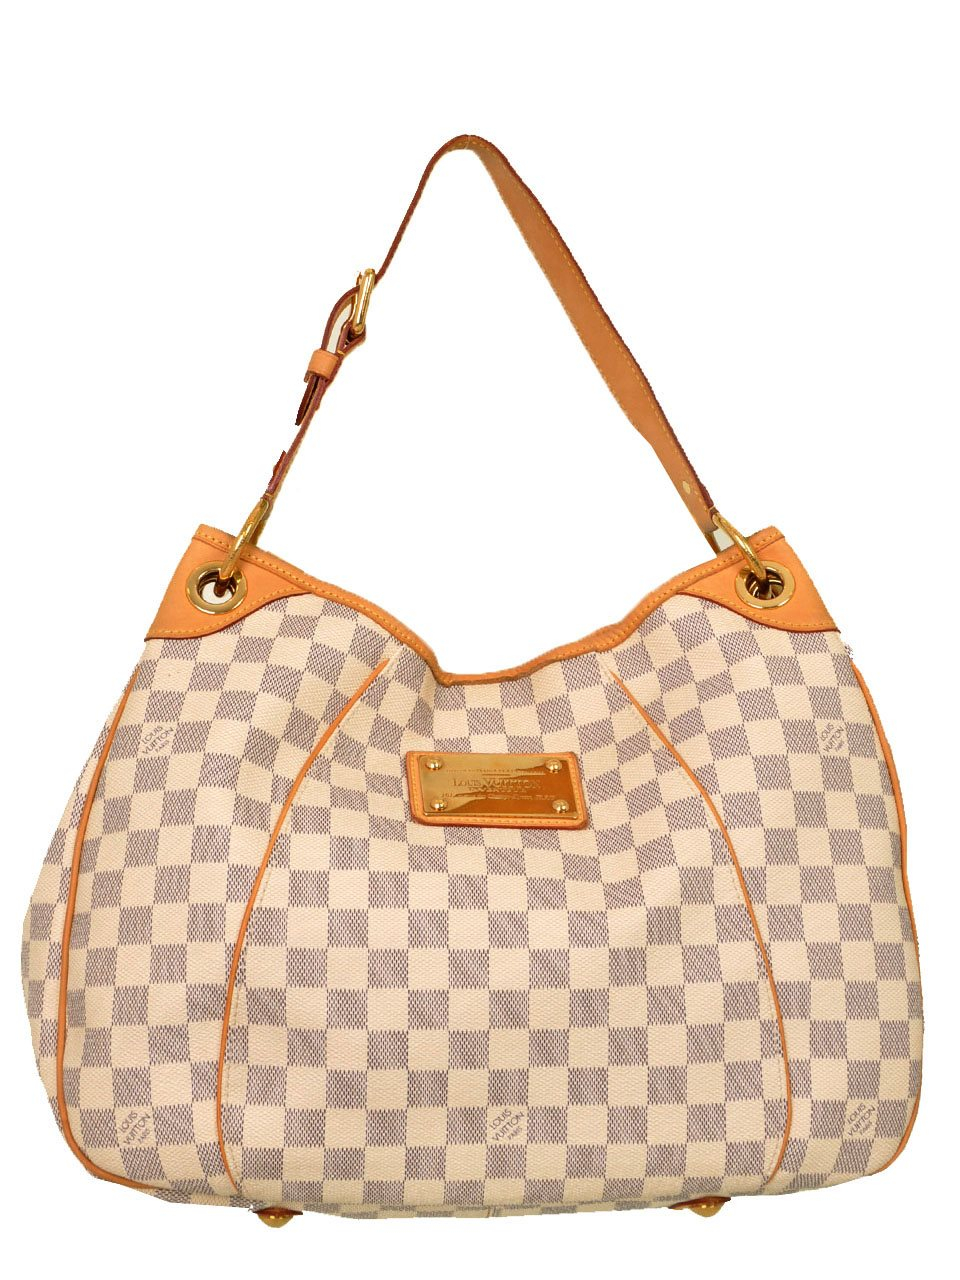 Louis Vuitton - Damier Azur Galliera PM Shoulder Bag